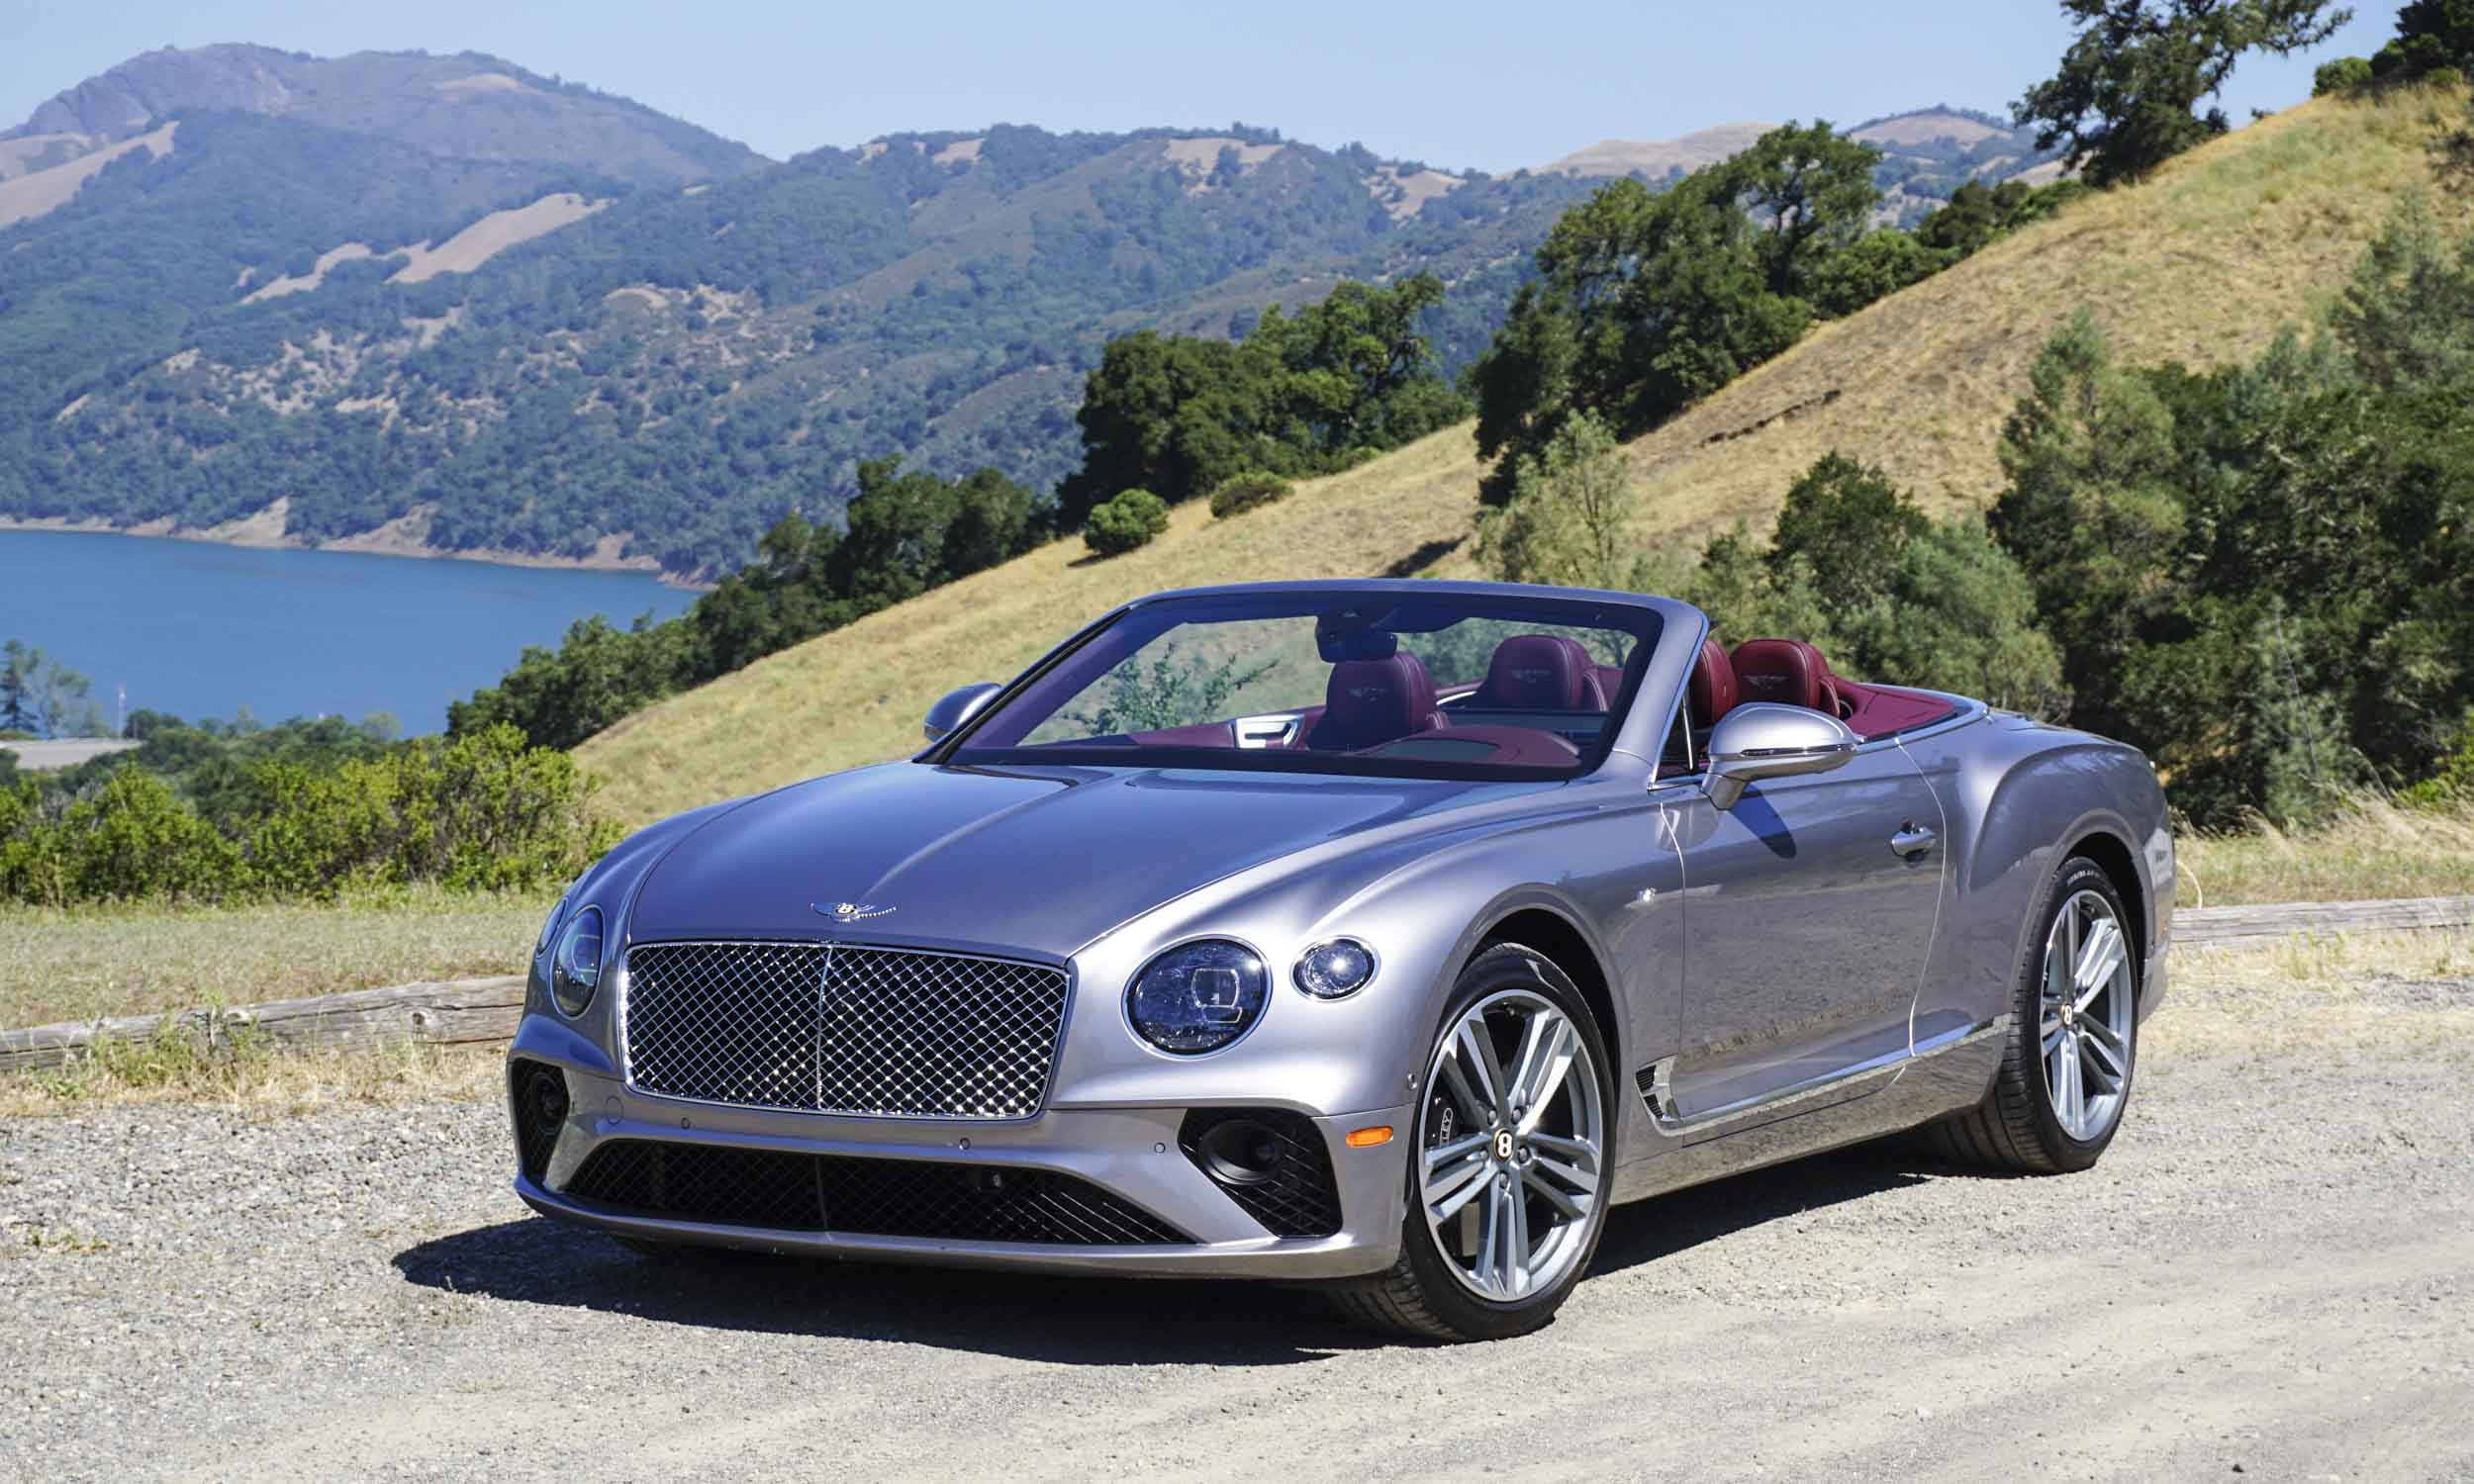 2020 Bentley Continental Gt V8 First Drive Review Automotive Industry News Car Reviews